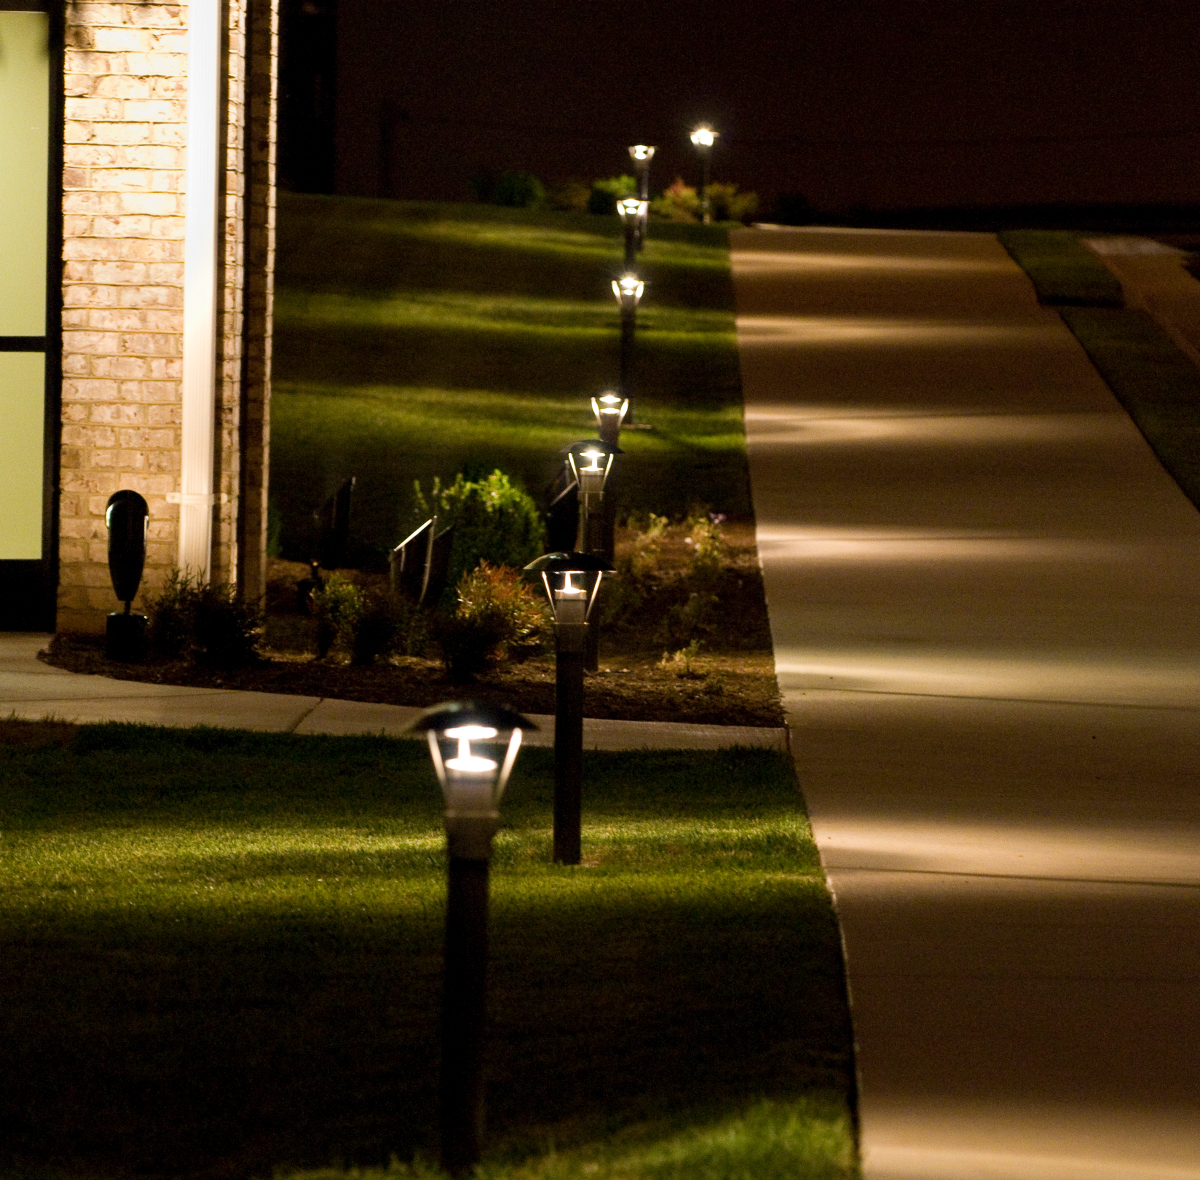 Outdoor Lighting Perspectives Of St. Louis, MO